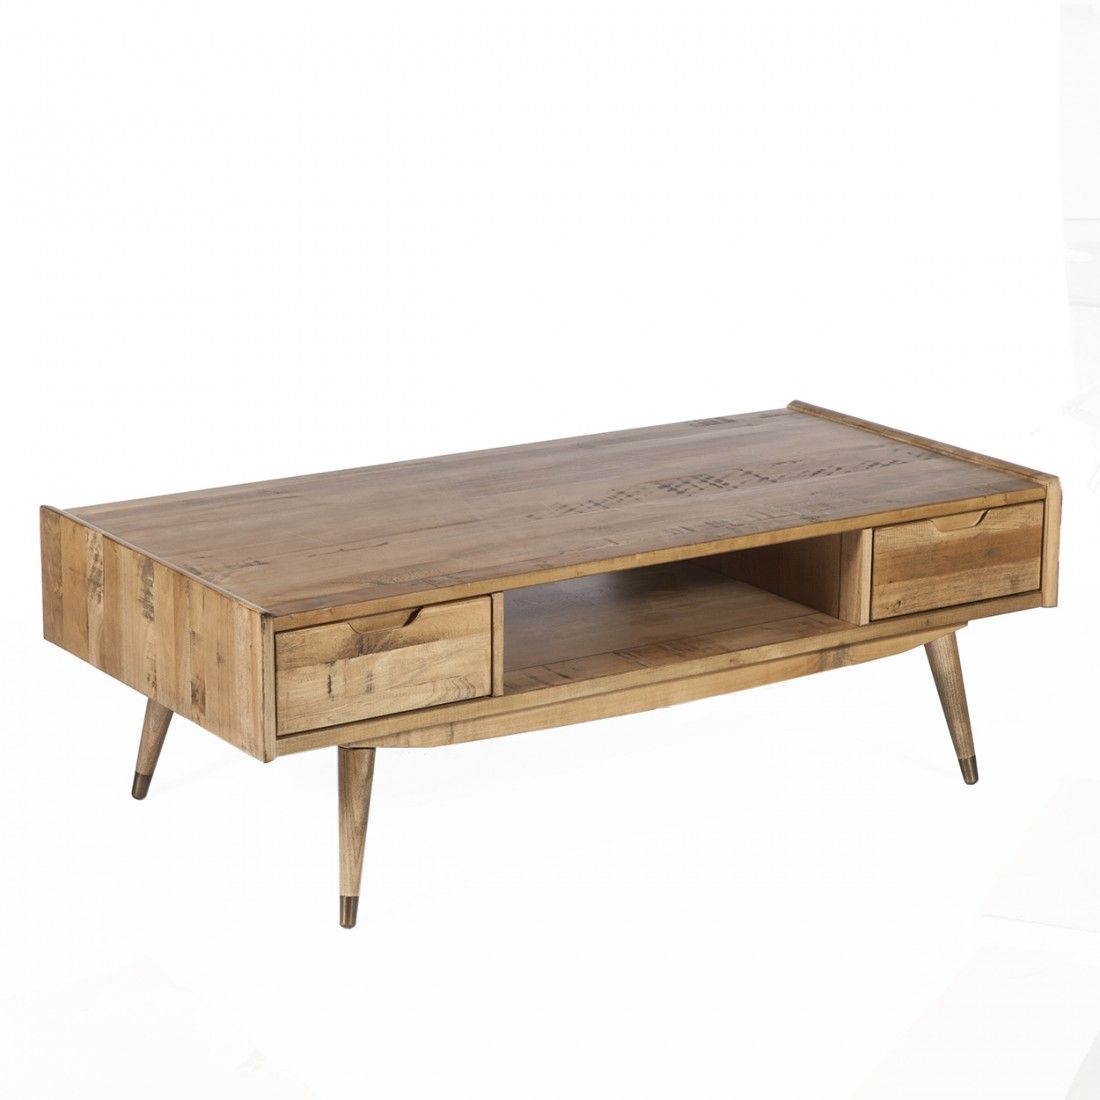 Anders 2 Drawer Coffee Table Coffee Table Mid Century Modern Coffee Table Coffee Table With Storage [ 1100 x 1100 Pixel ]